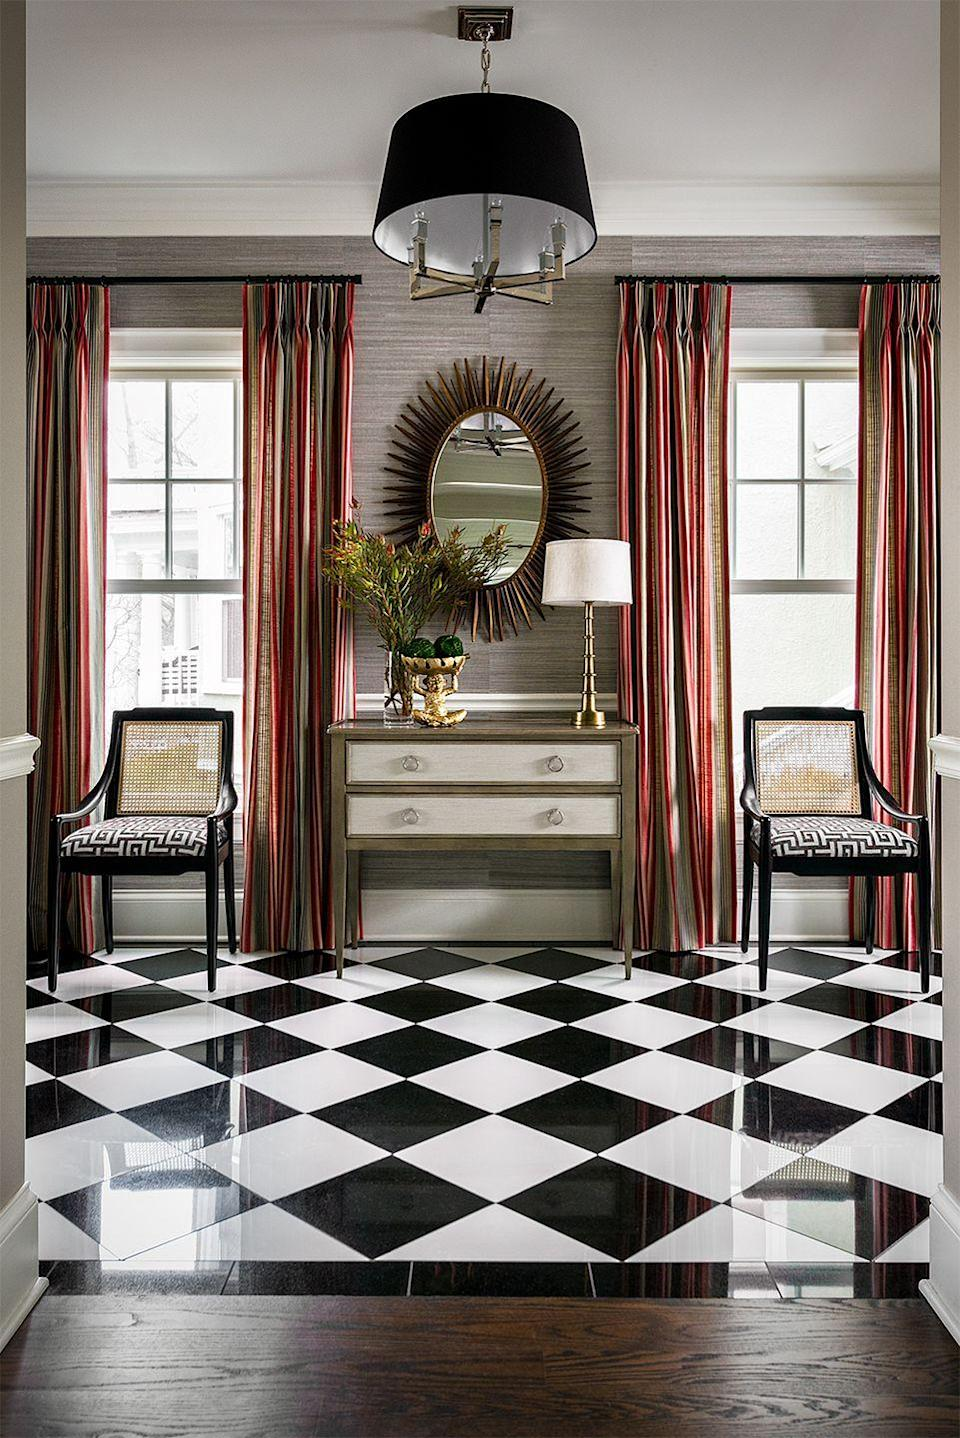 <p>Immaculate black-and-white checkerboard floors and metallic accents are tied together harmoniously with Mark Lavender's use of Phillip Jeffries Bermuda Hemp #5261 Graphite on the walls.</p>